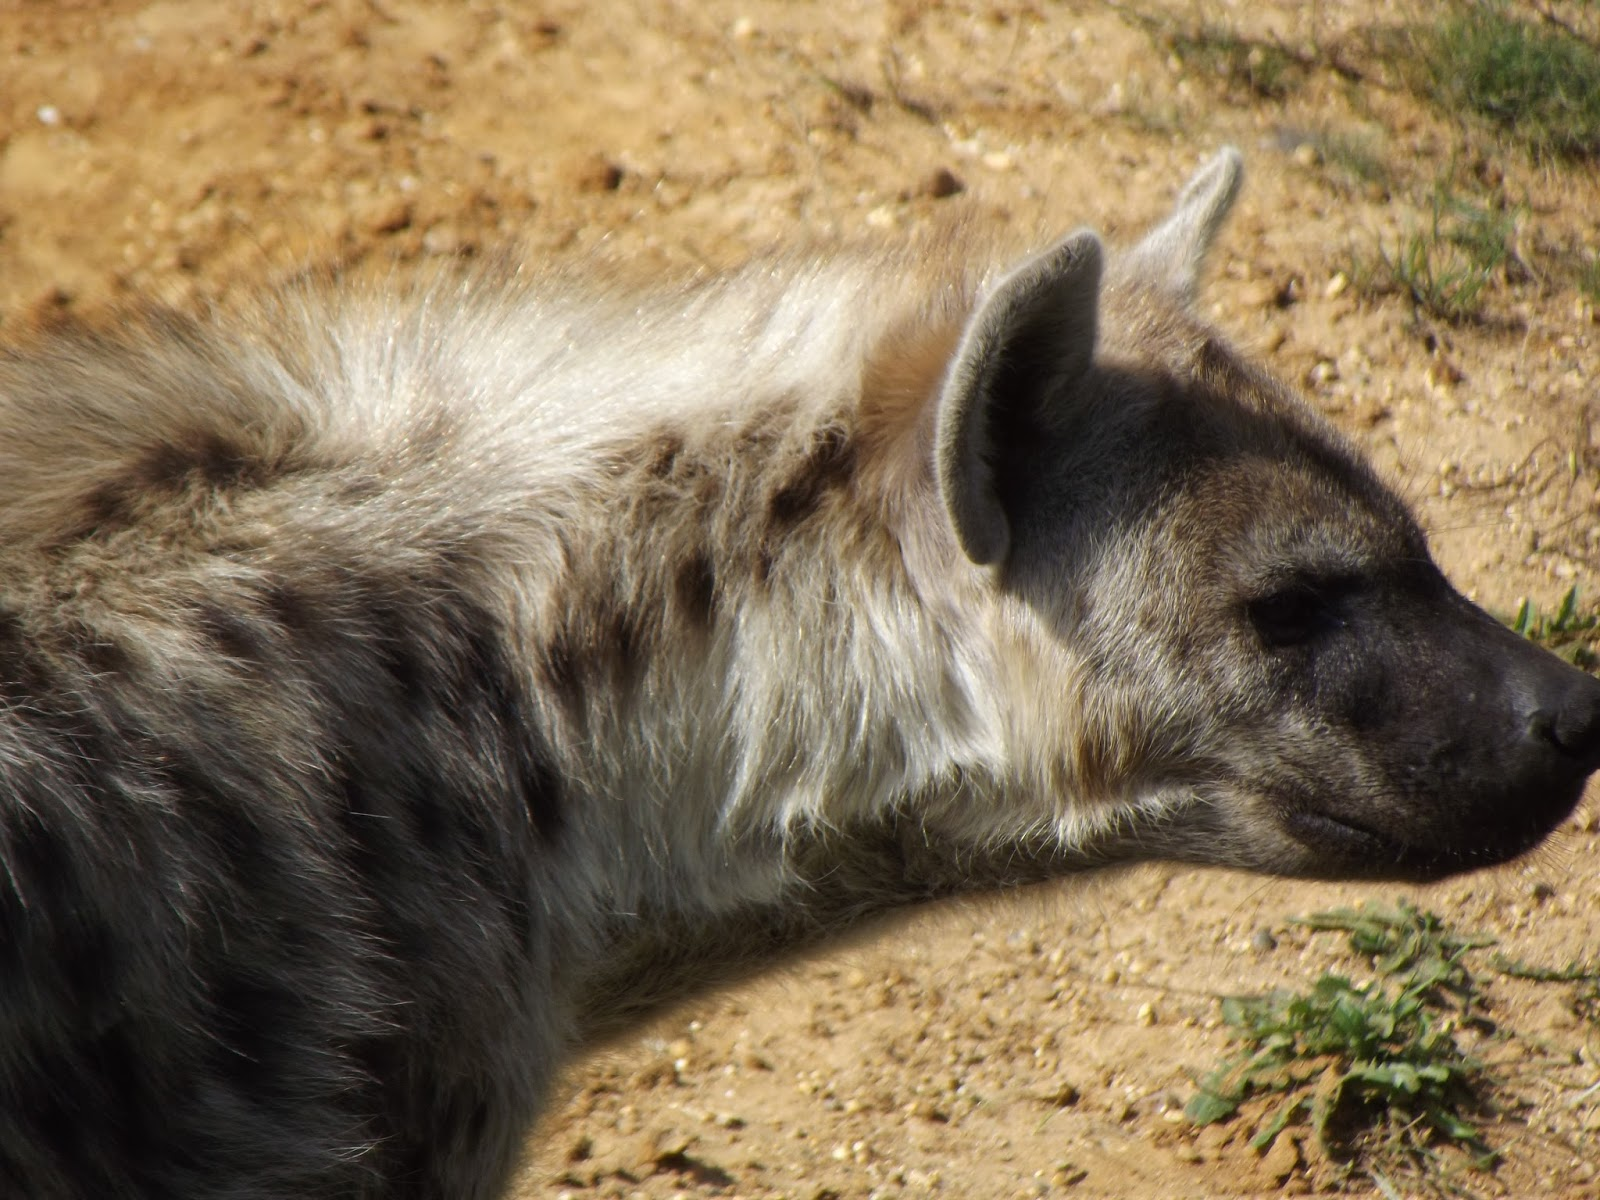 Female Hyenas Have Male Genitalia